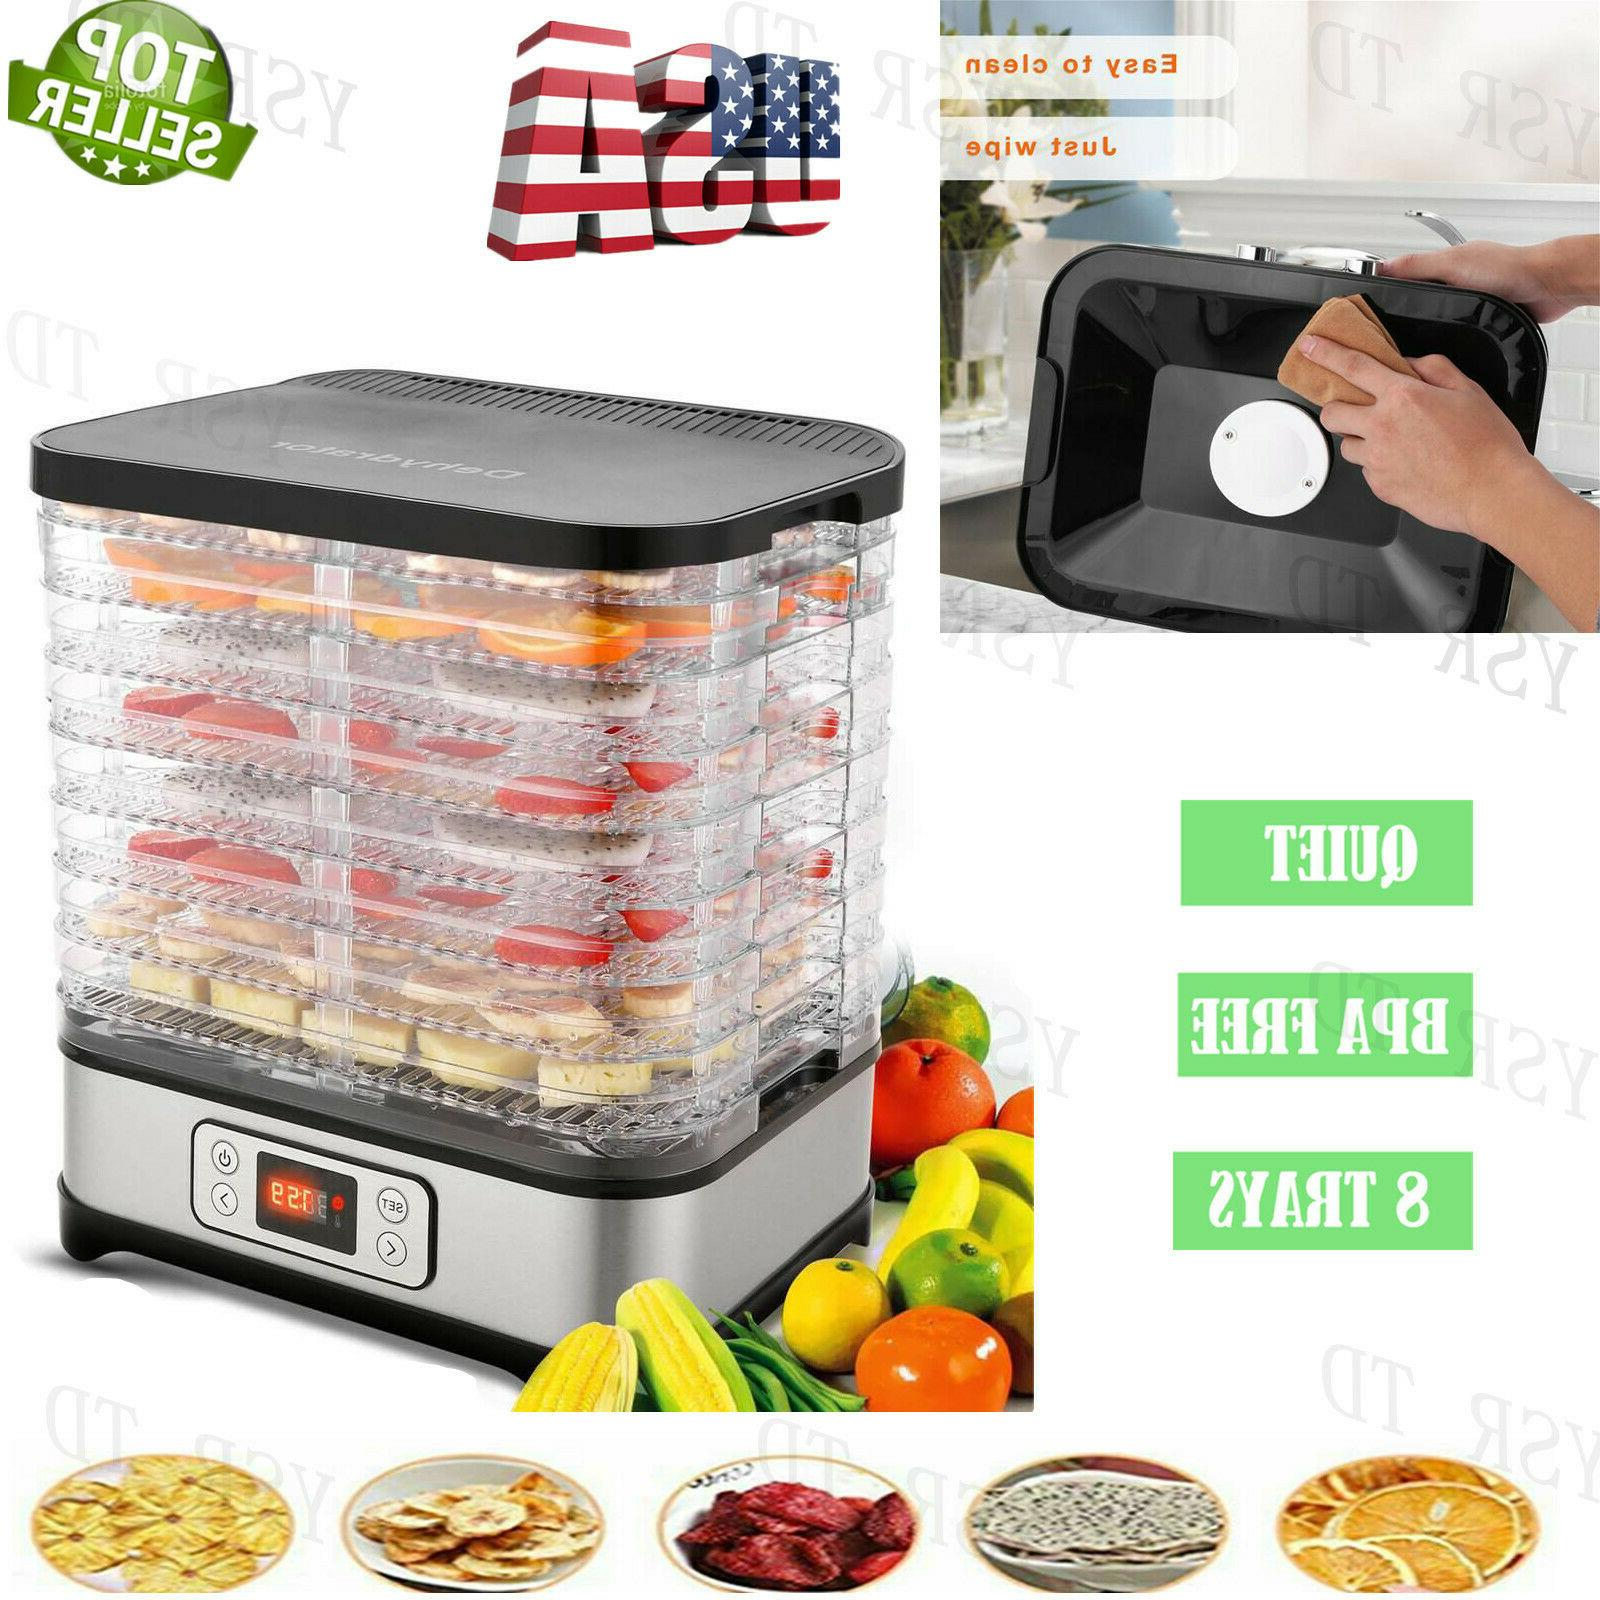 5-8 Tier Electric Food Dehydrator Machine Fruit Dryer Beef J